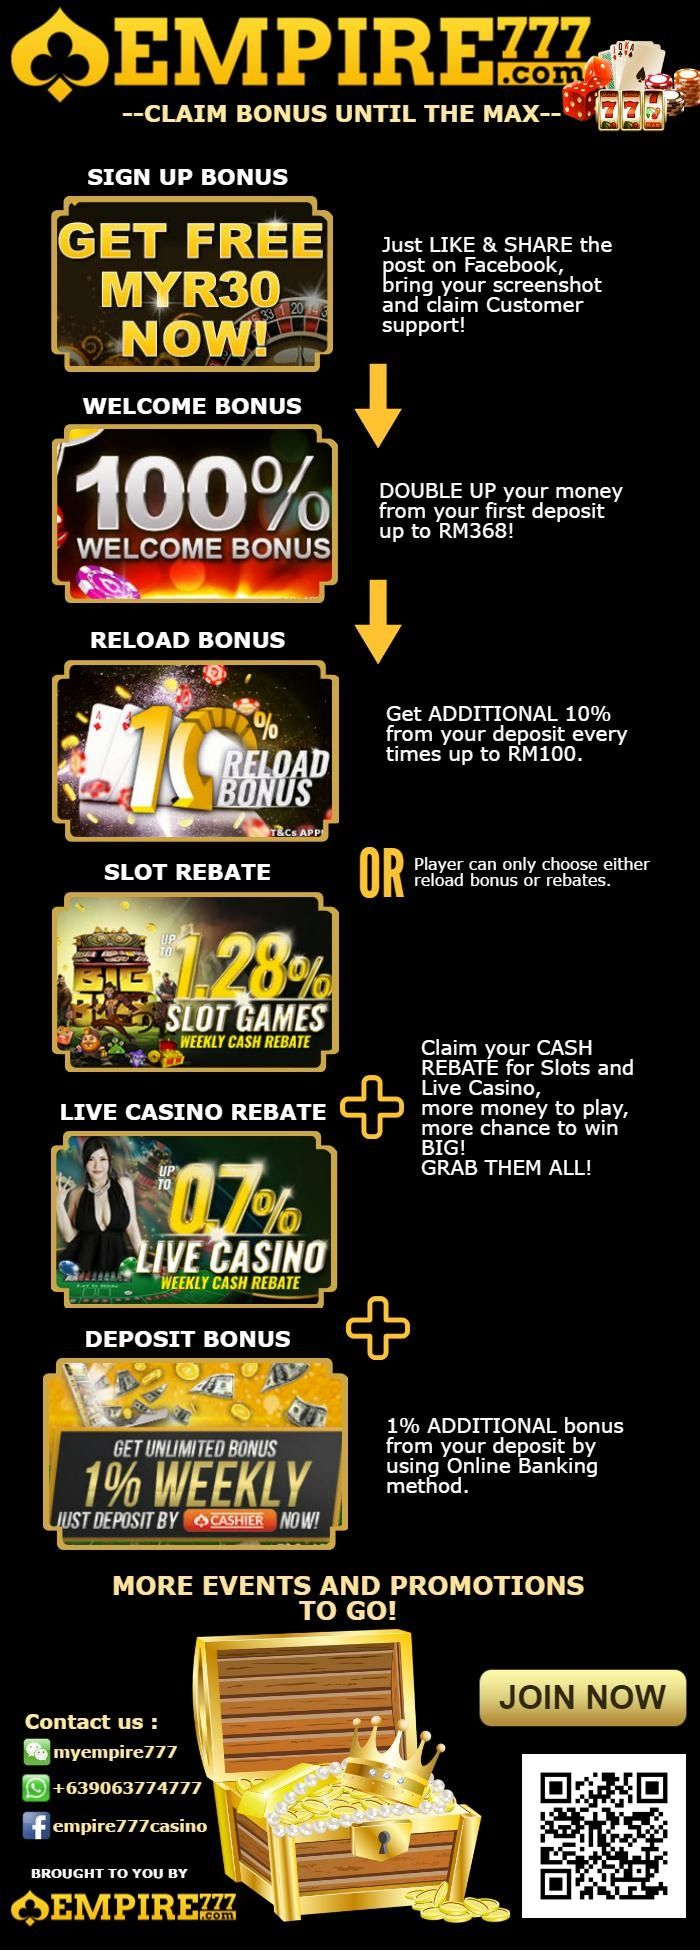 White club casino bonus promotions mowhak casino